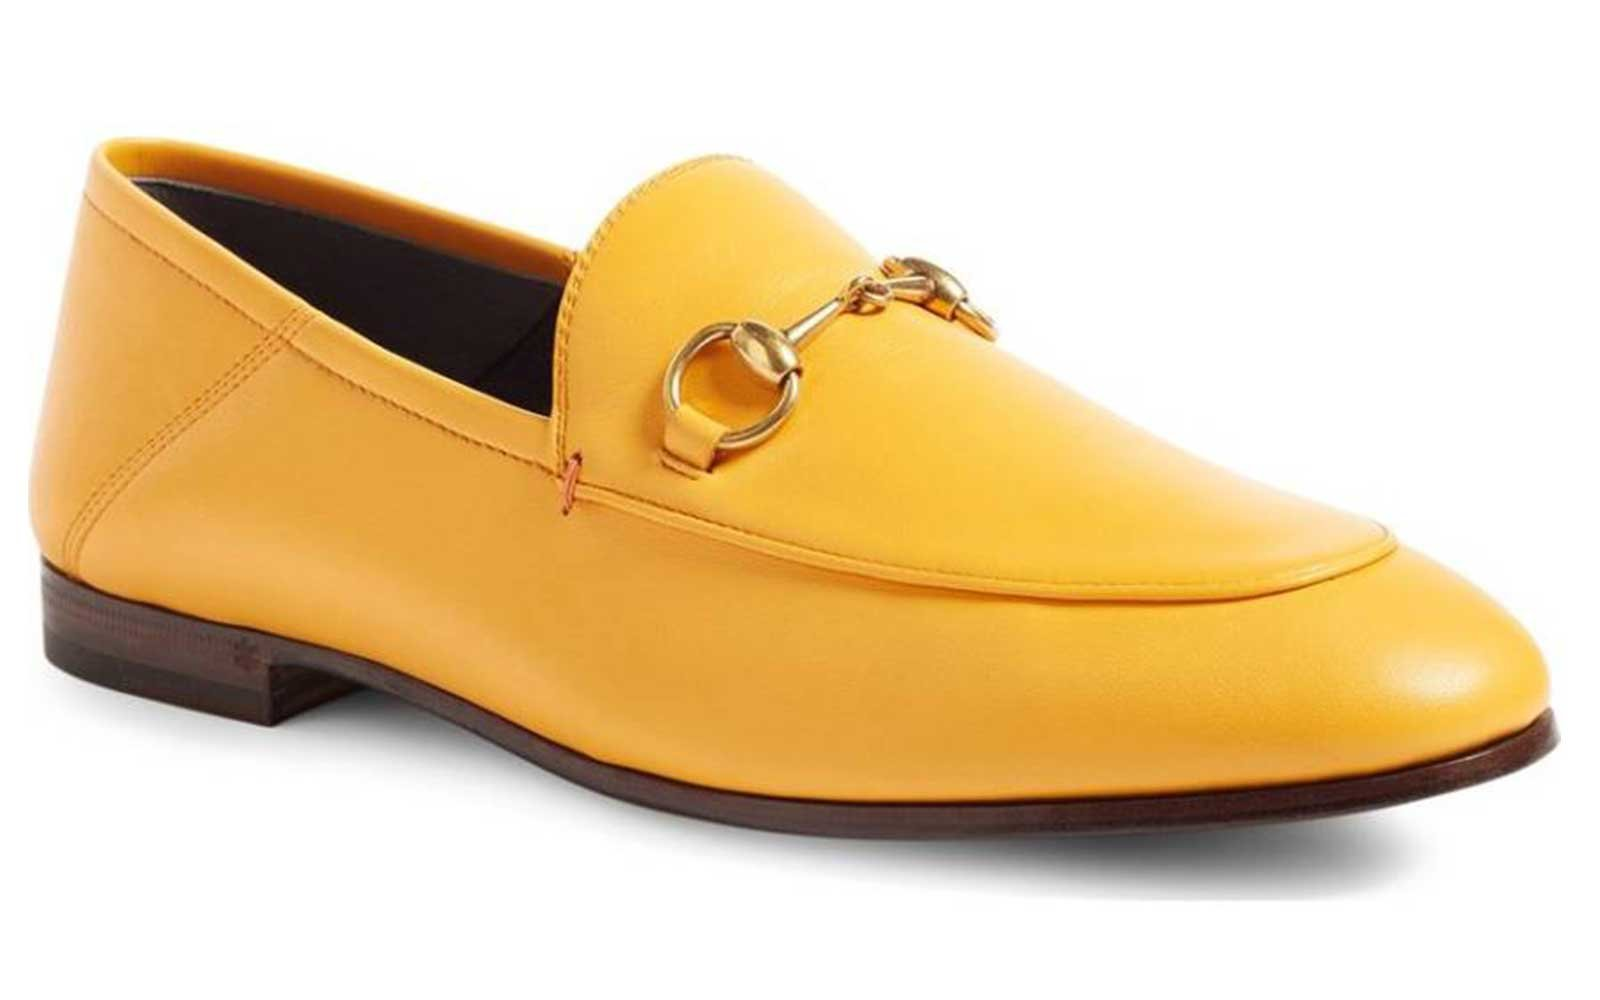 Yellow Slipper Loafers for Fall